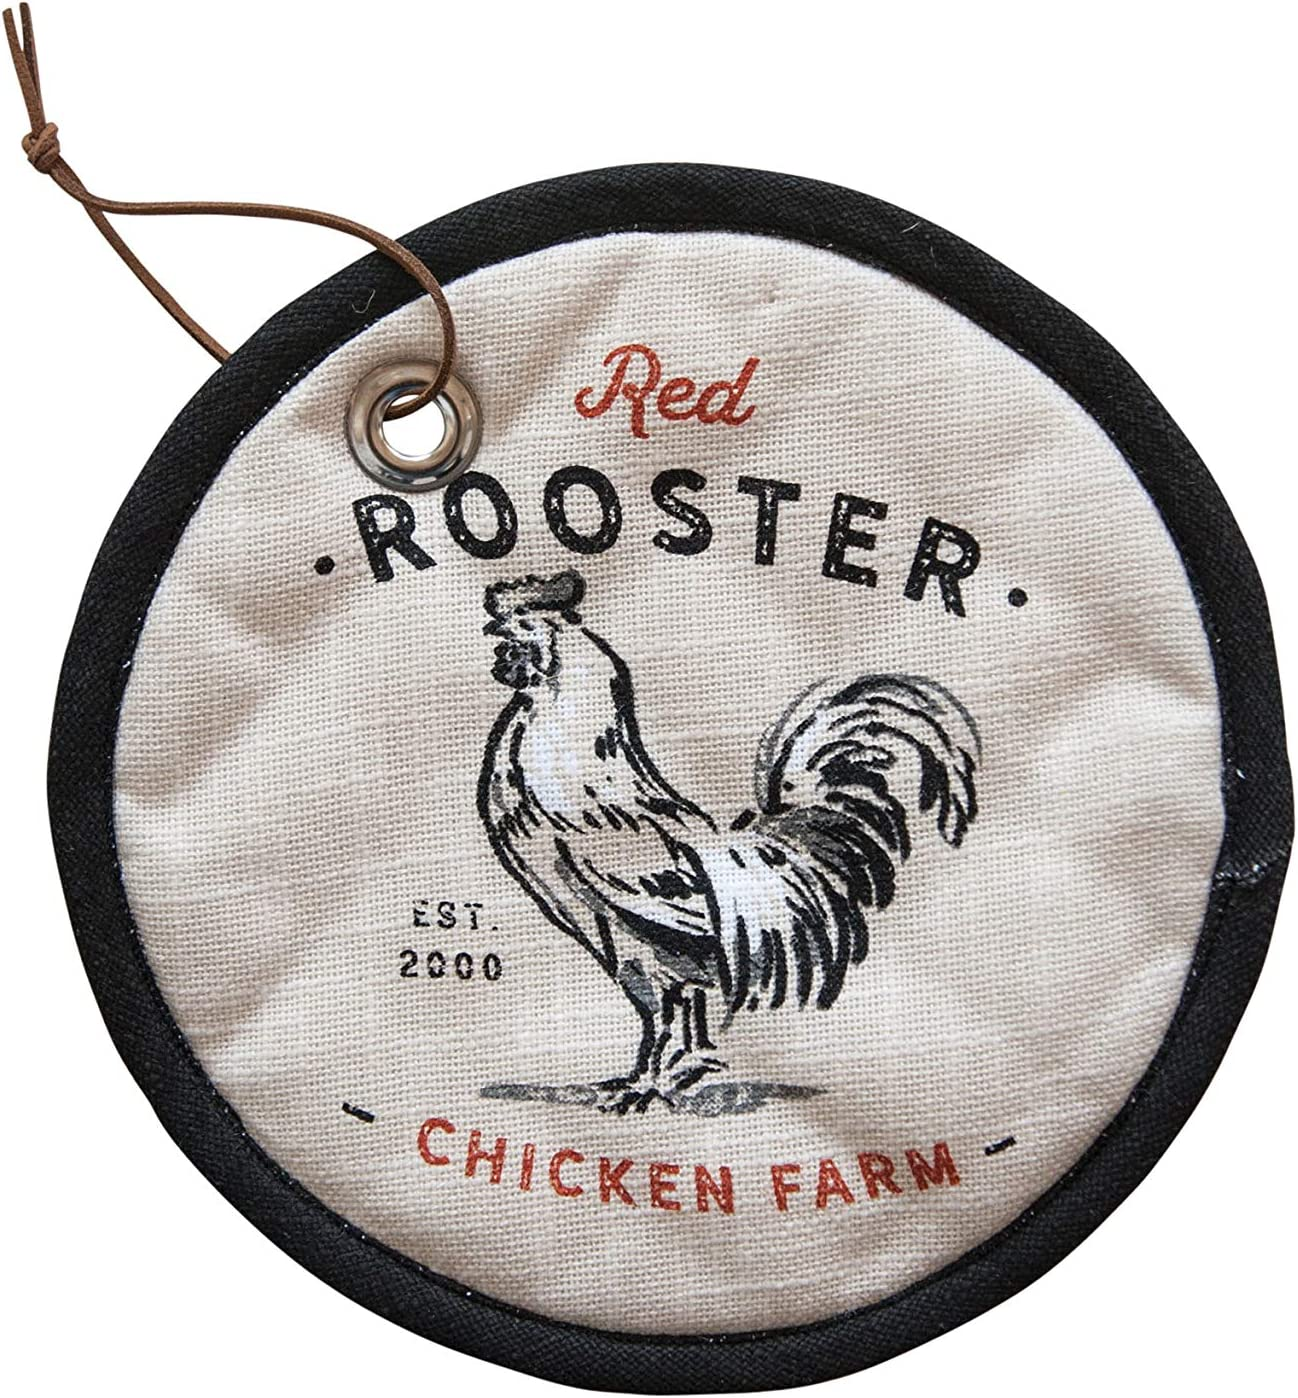 Creative Co-op Black & White Red Rooster Chicken Farm Cotton Potholder, Black